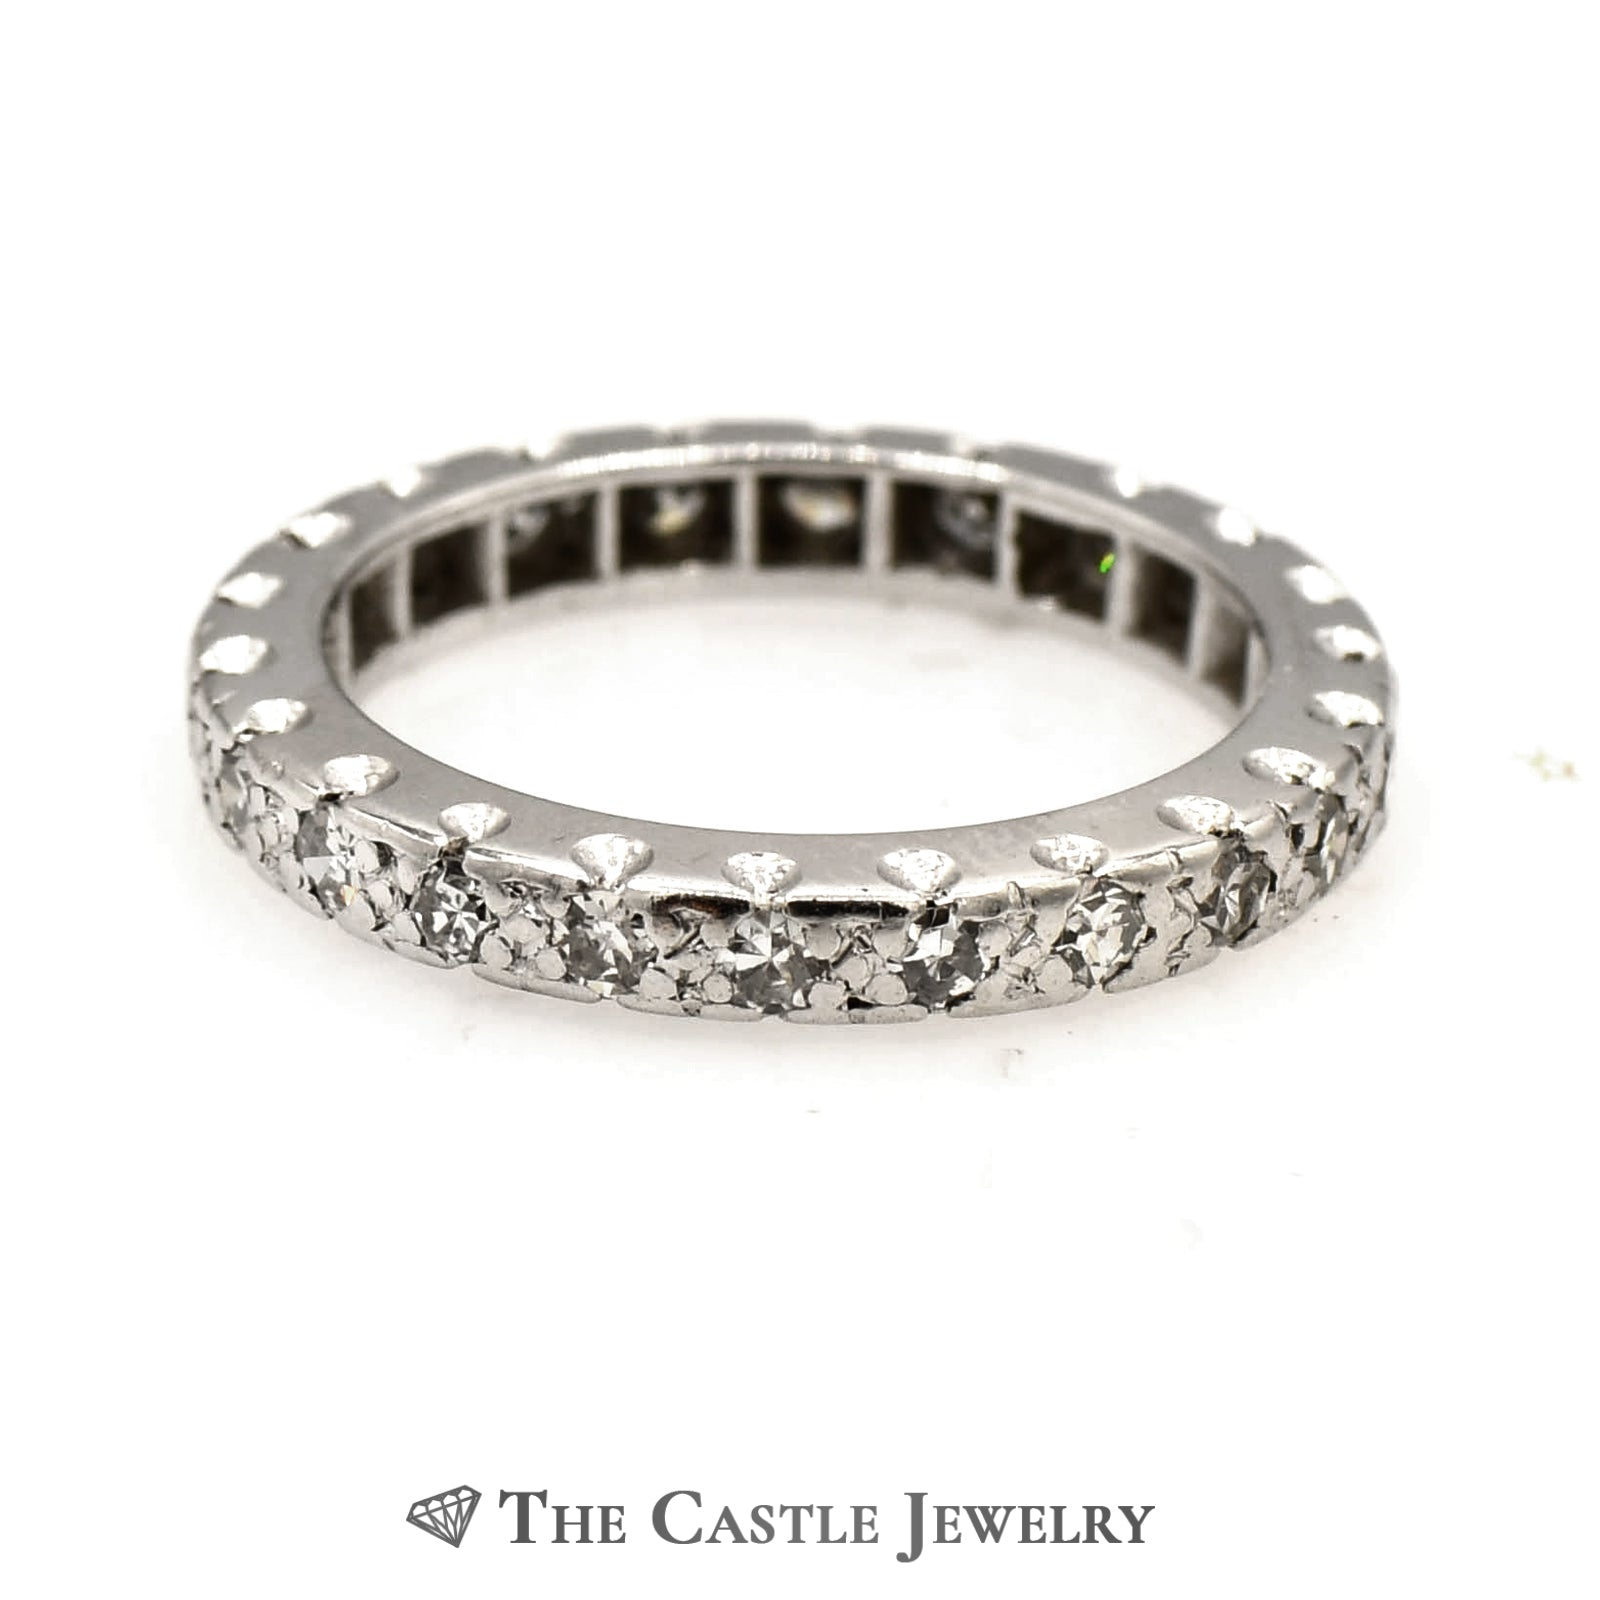 .50cttw Round Diamond Eternity Band in 10k White Gold